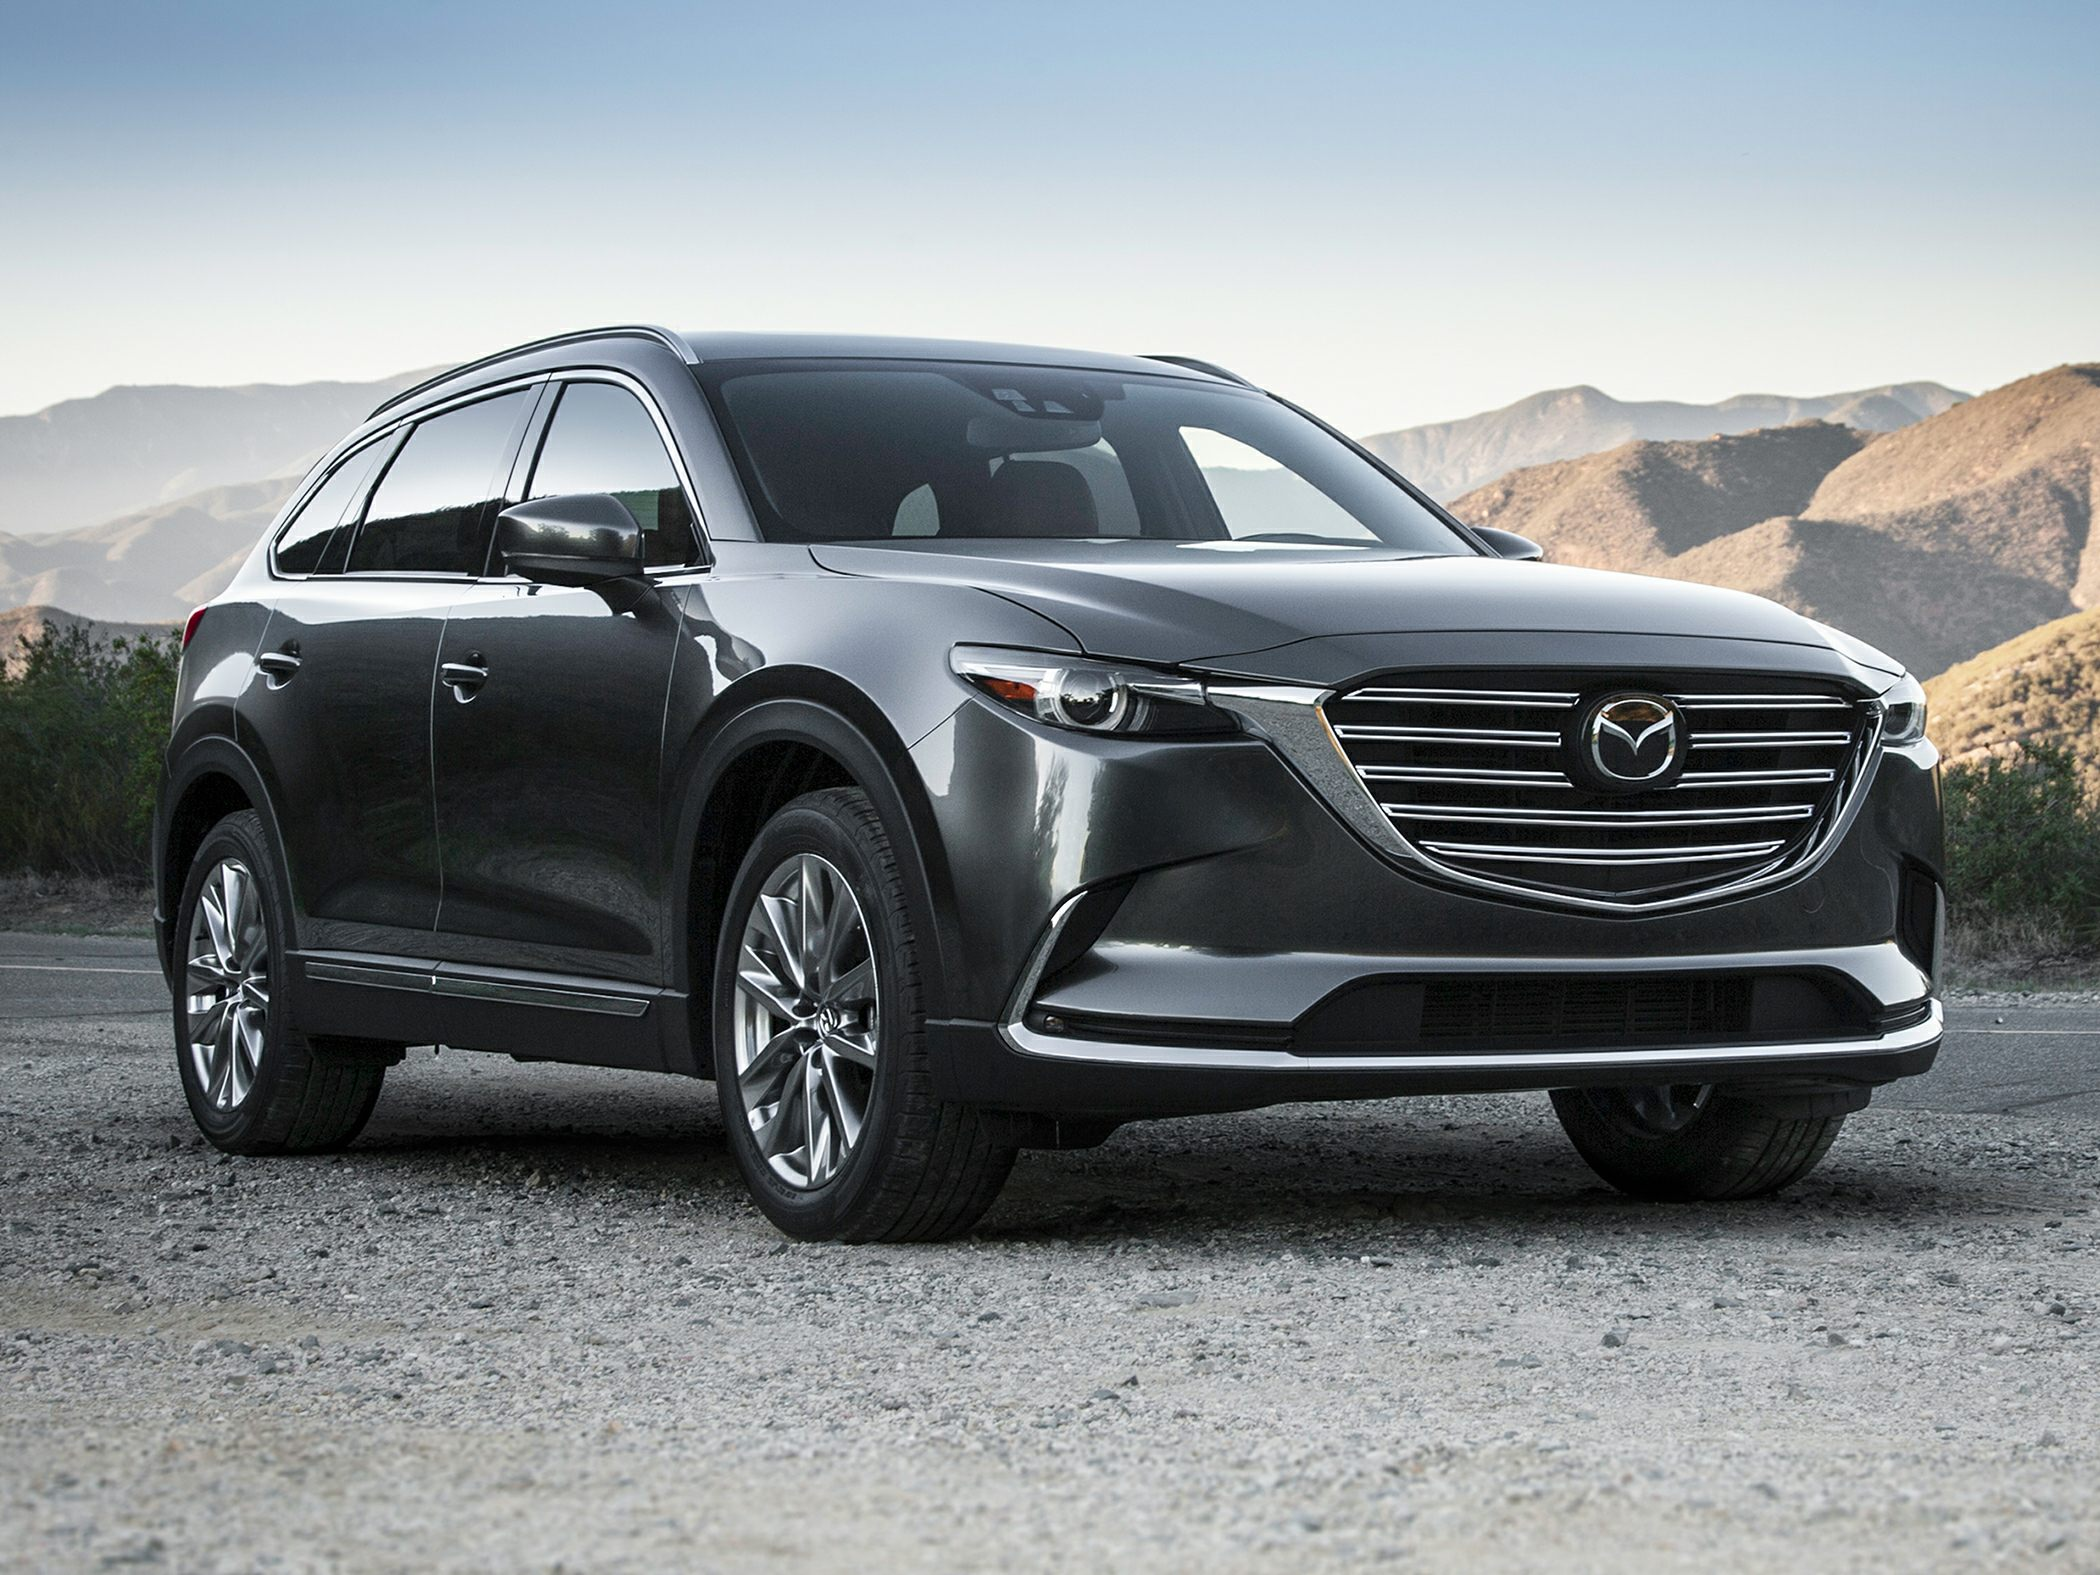 2018 Mazda CX 9 Deals Prices Incentives & Leases Overview